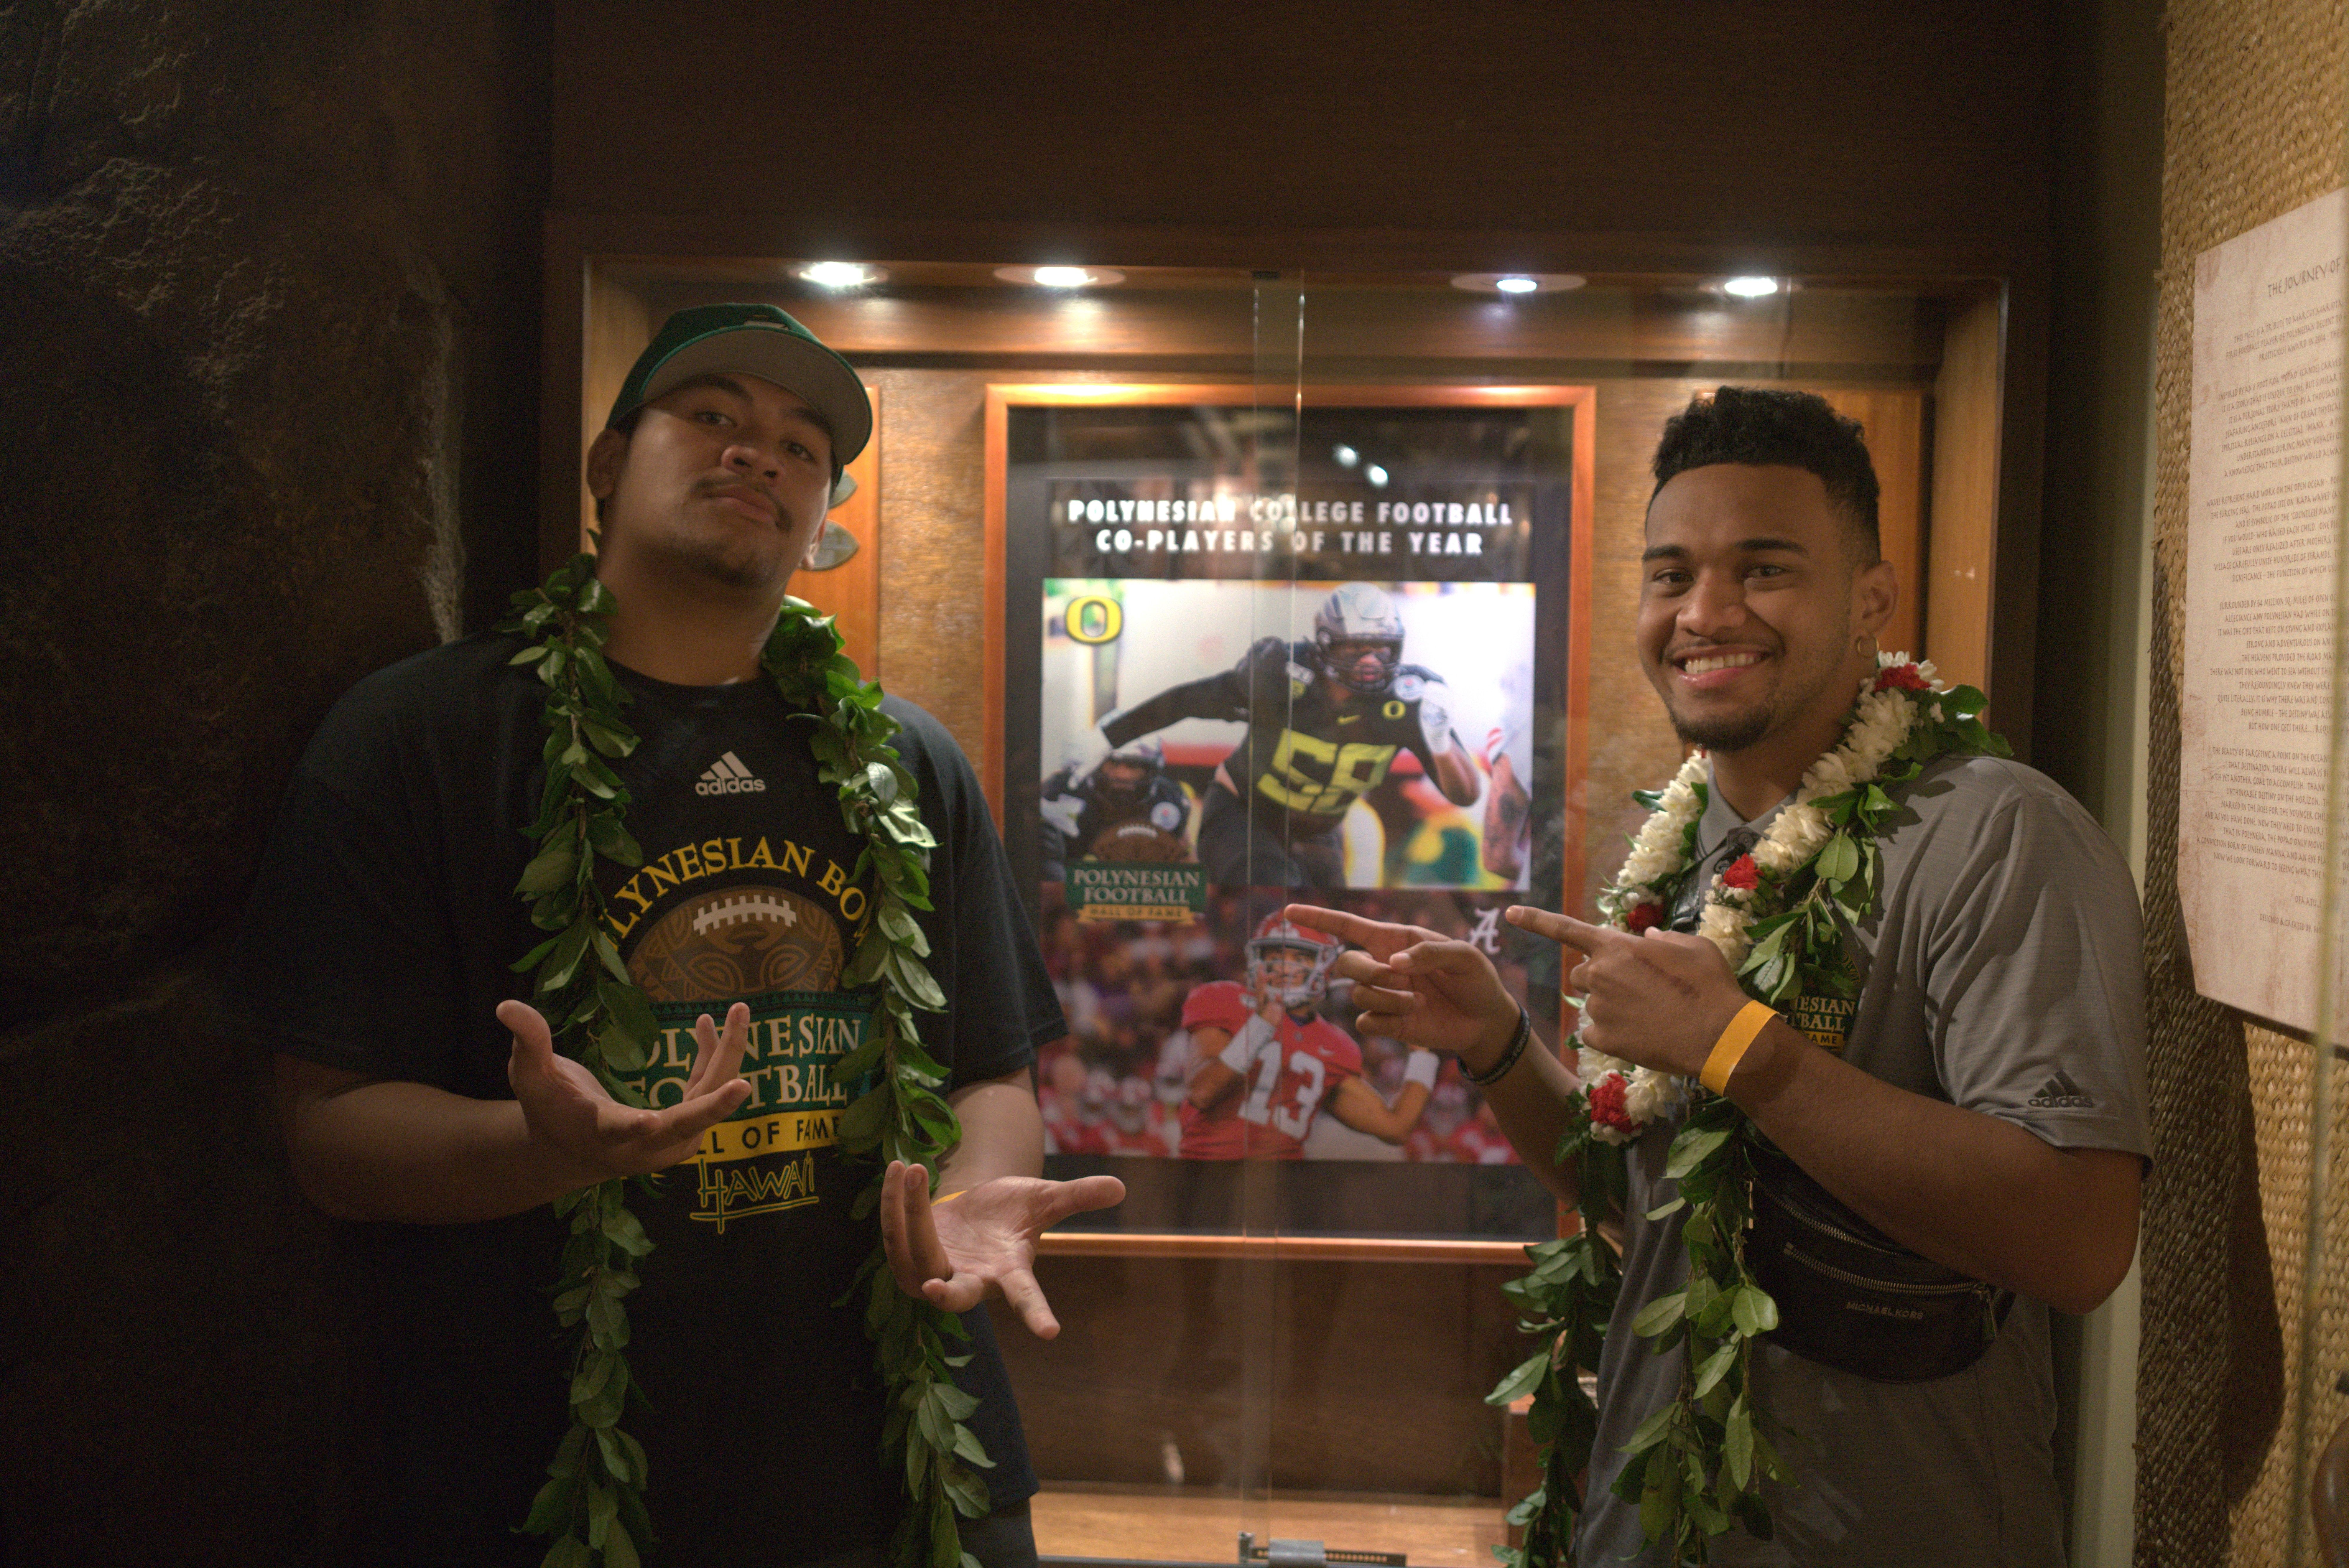 Photo of Peni Sewell (l) and Tua Tagovailoa (r), co-recipients of the 2019 Polynesian Football Hall of Fame College Players of the Year.